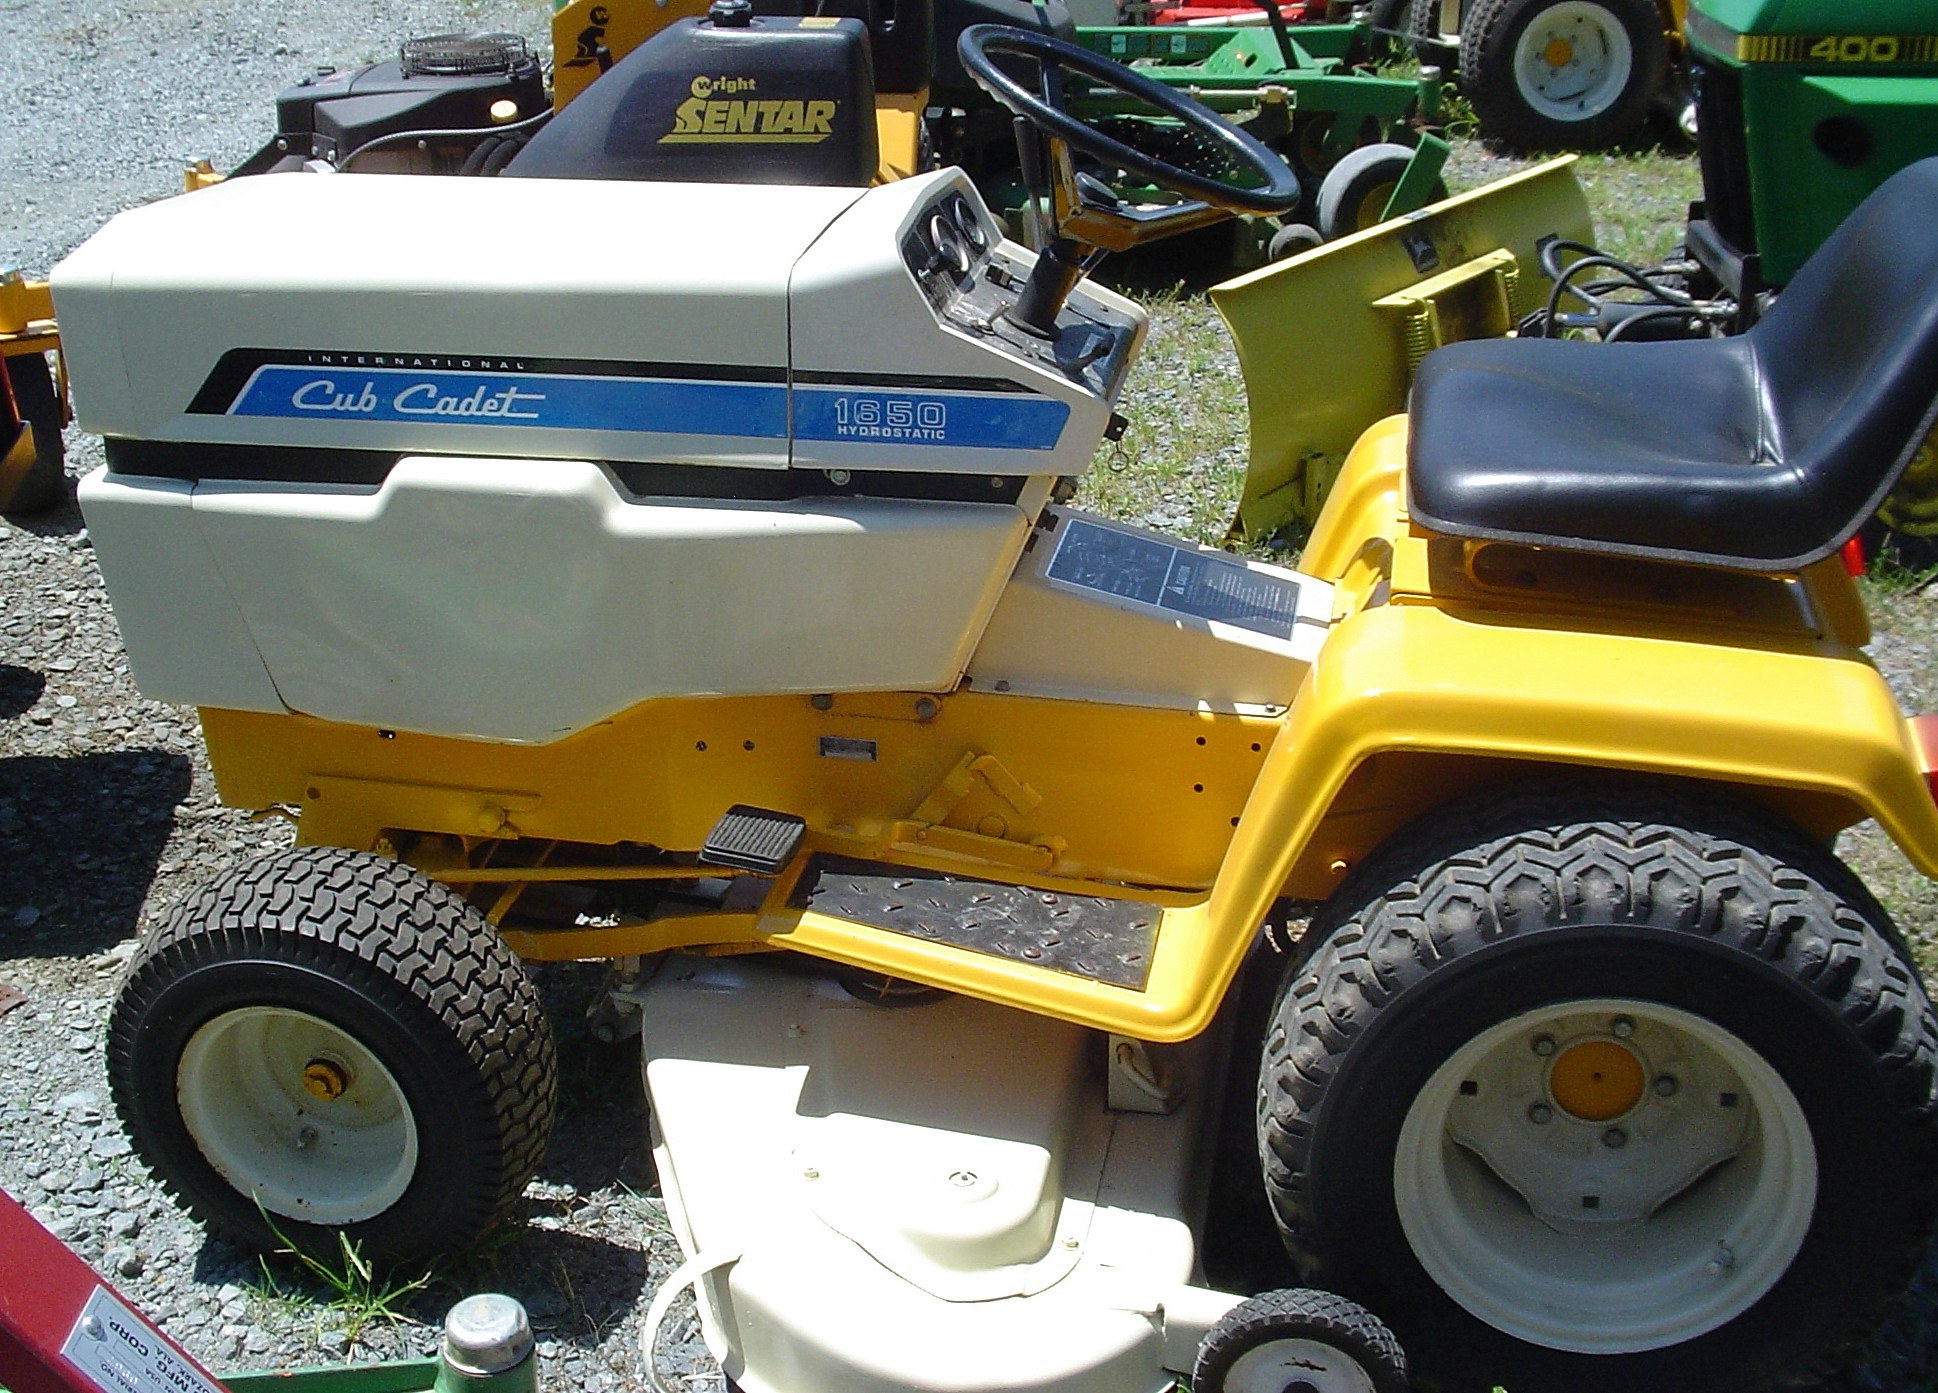 982 Cub Cadet Super Garden Tractor : International cub cadet tractor construction